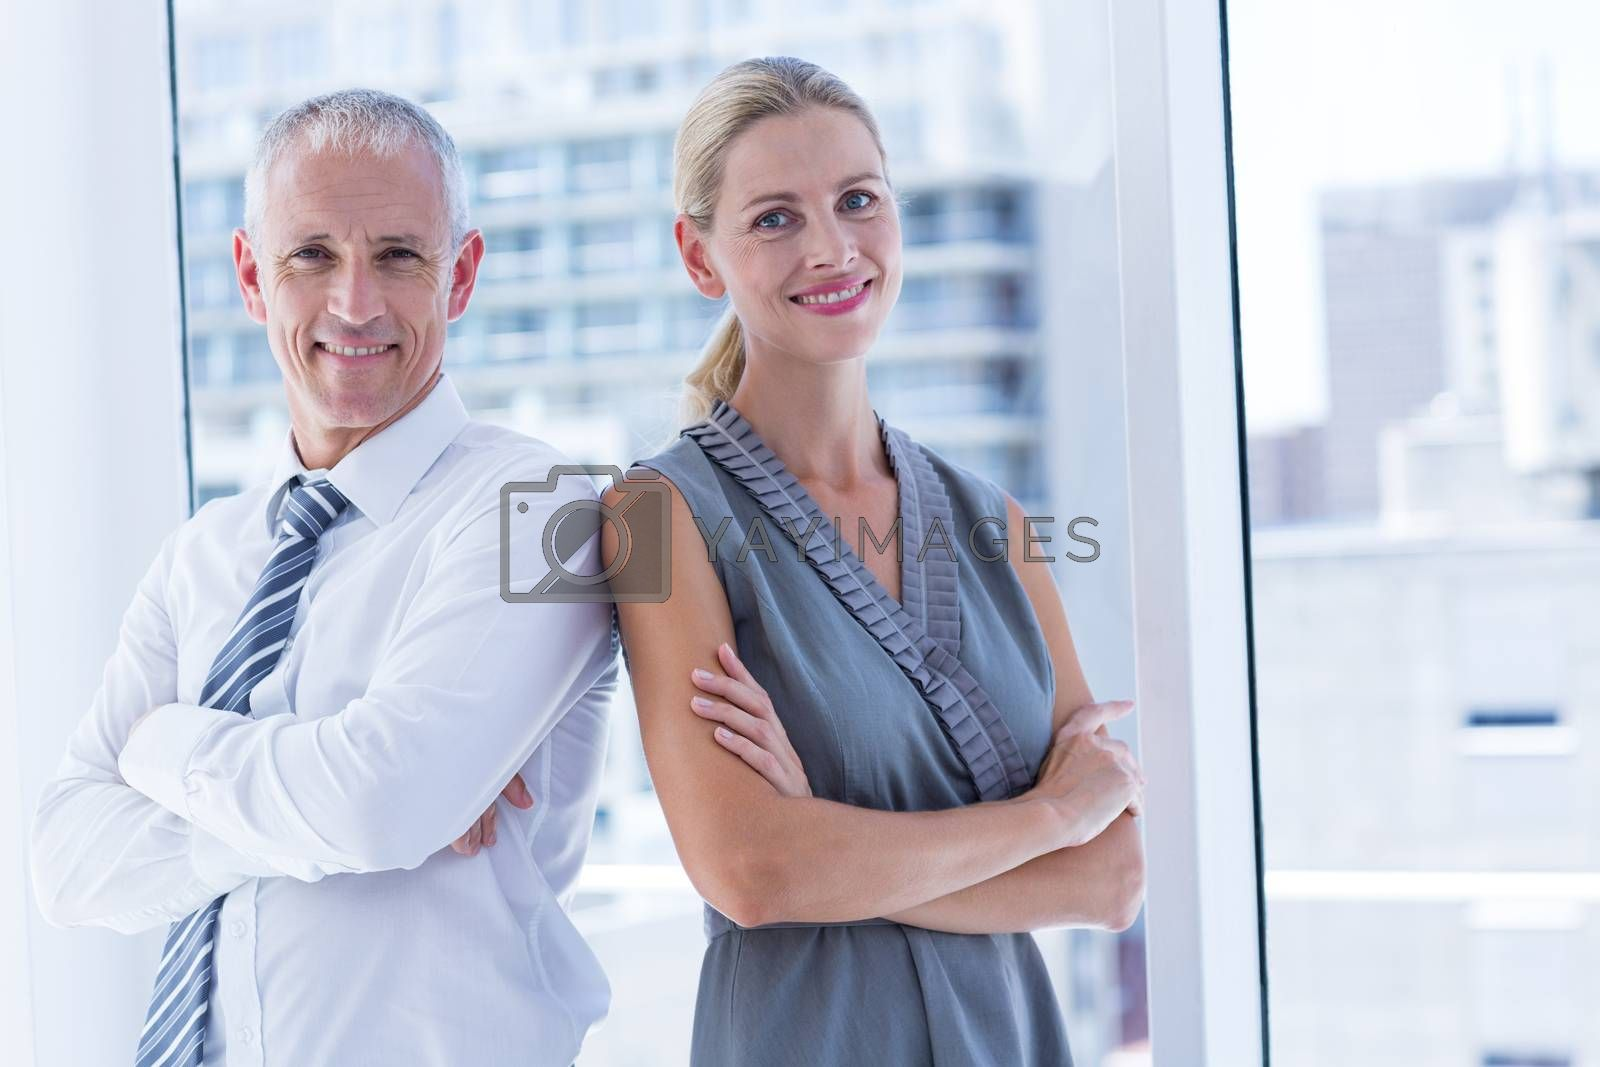 Royalty free image of Two business people smiling at the camera in the office by Wavebreakmedia